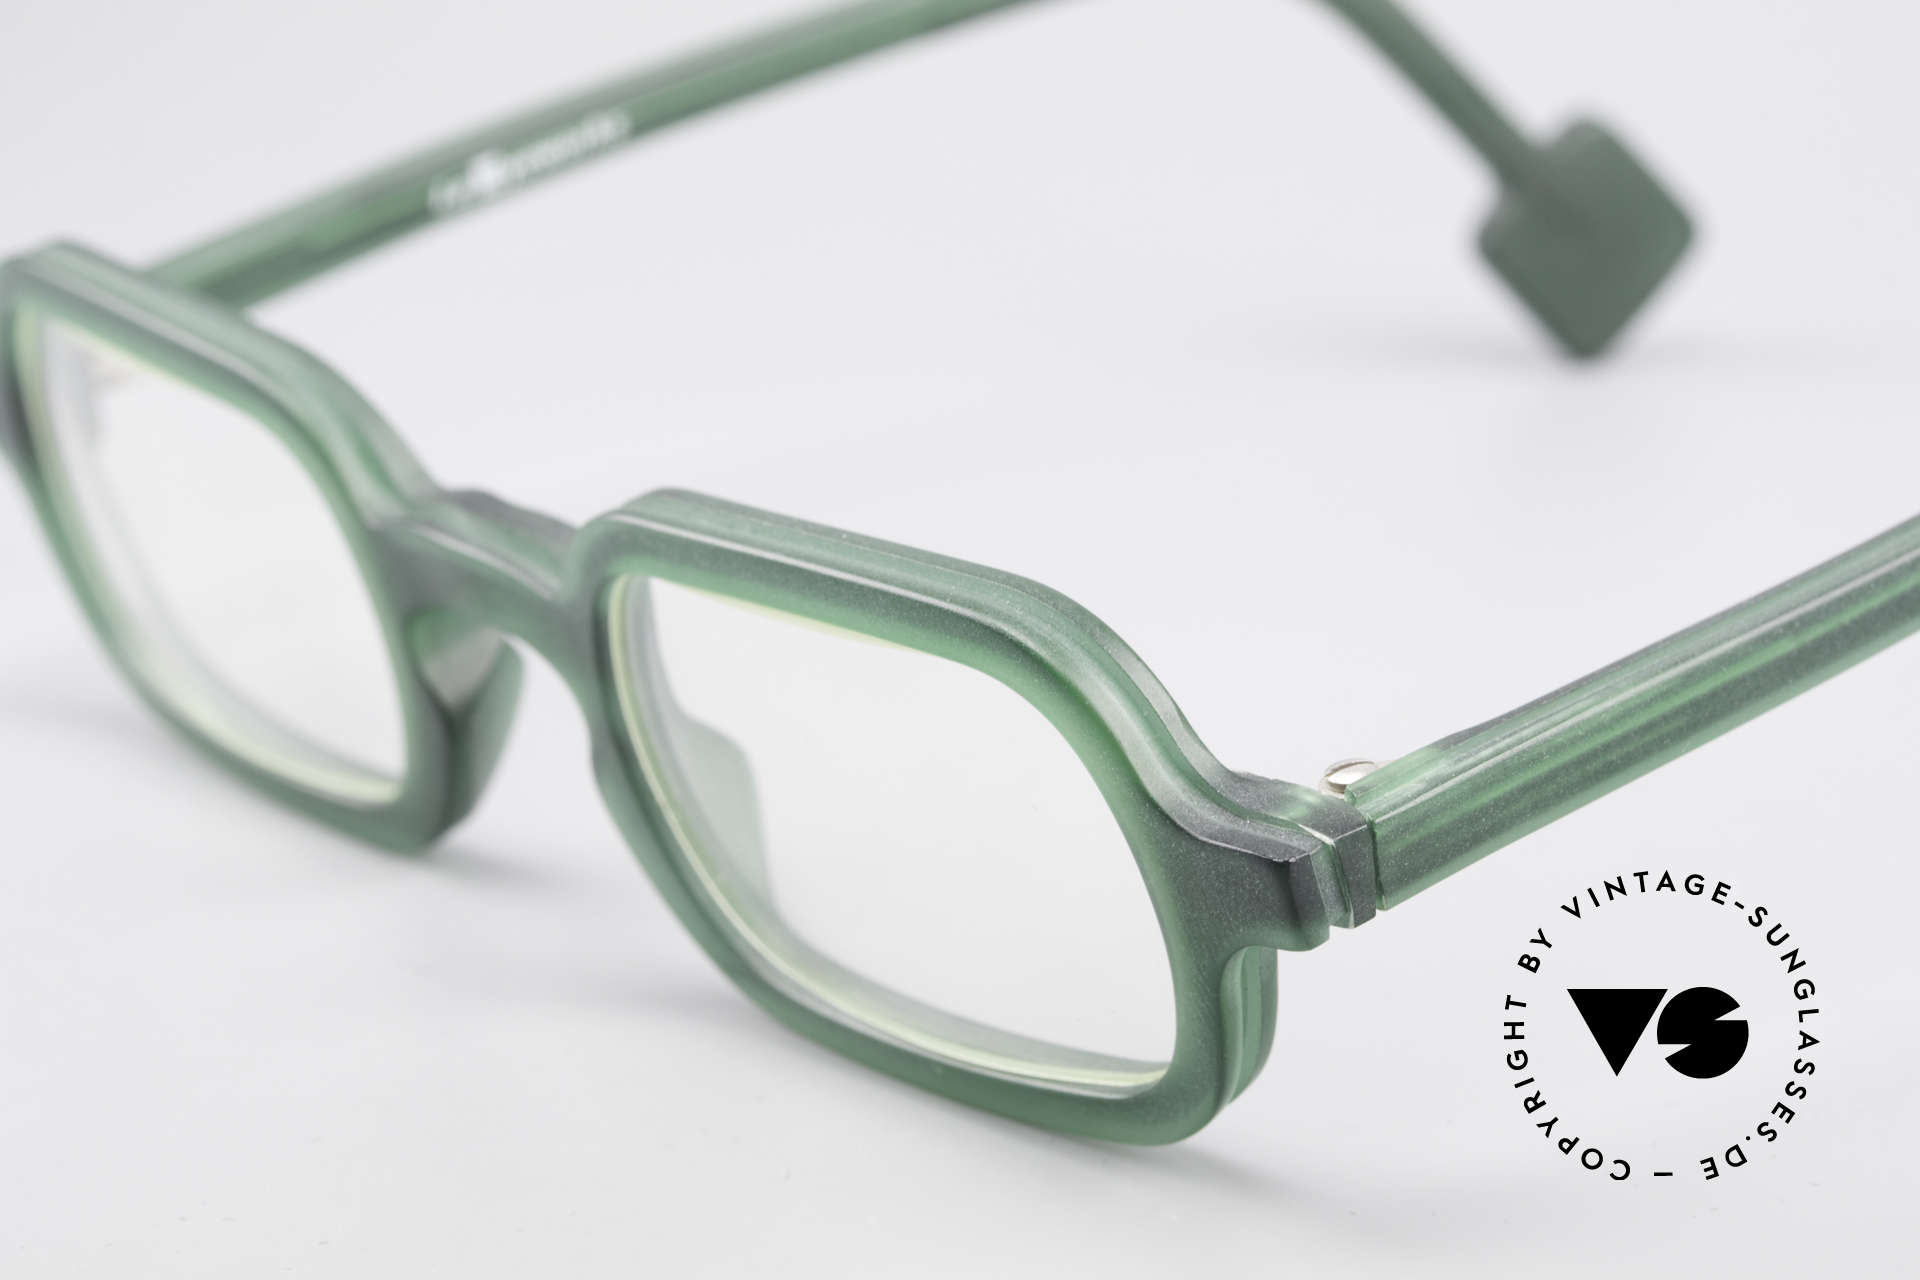 L.A. Eyeworks HANK 230 True Vintage 90's Eyeglasses, timeless & puristic, at the same time - a true classic, Made for Men